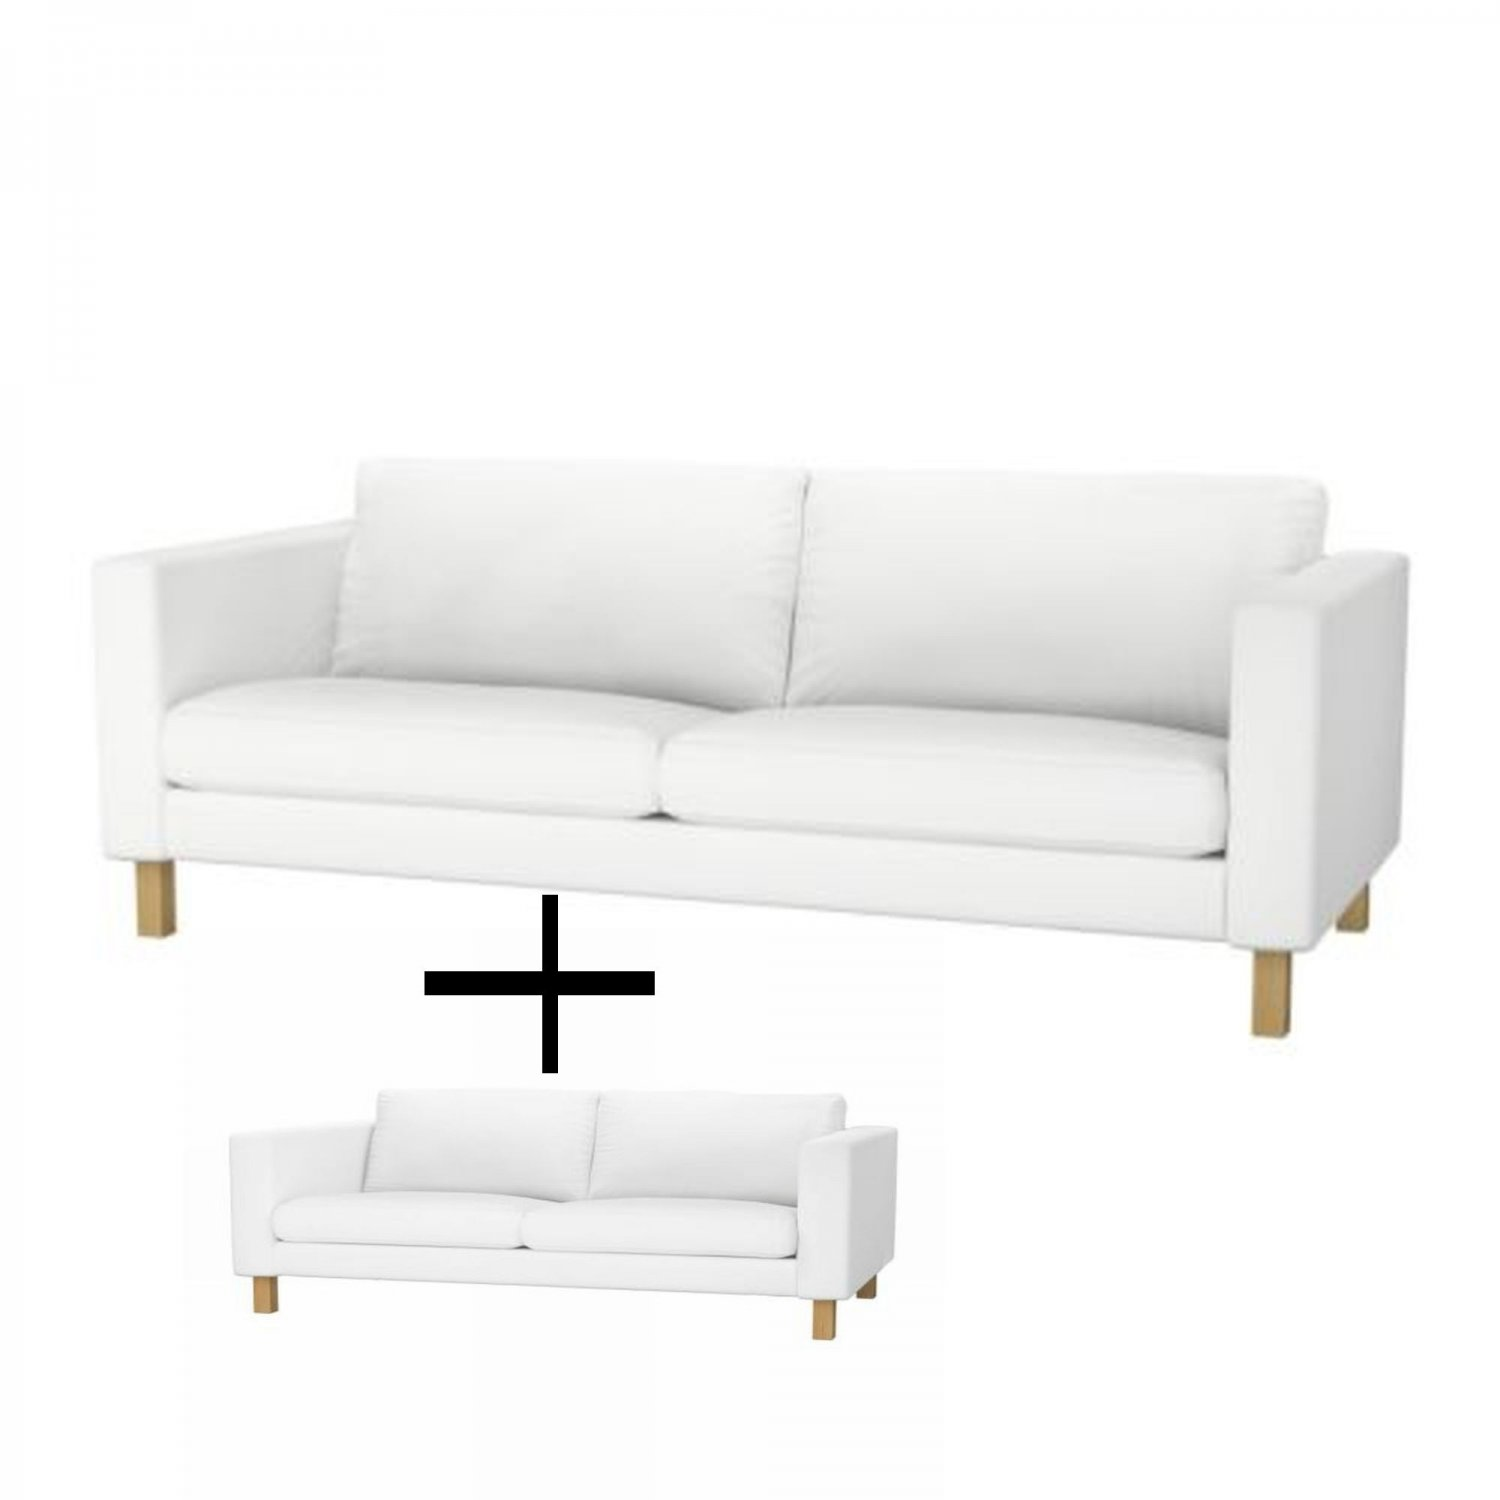 ikea karlstad 3 seat sofa and 2 seat lovseat slipcover. Black Bedroom Furniture Sets. Home Design Ideas